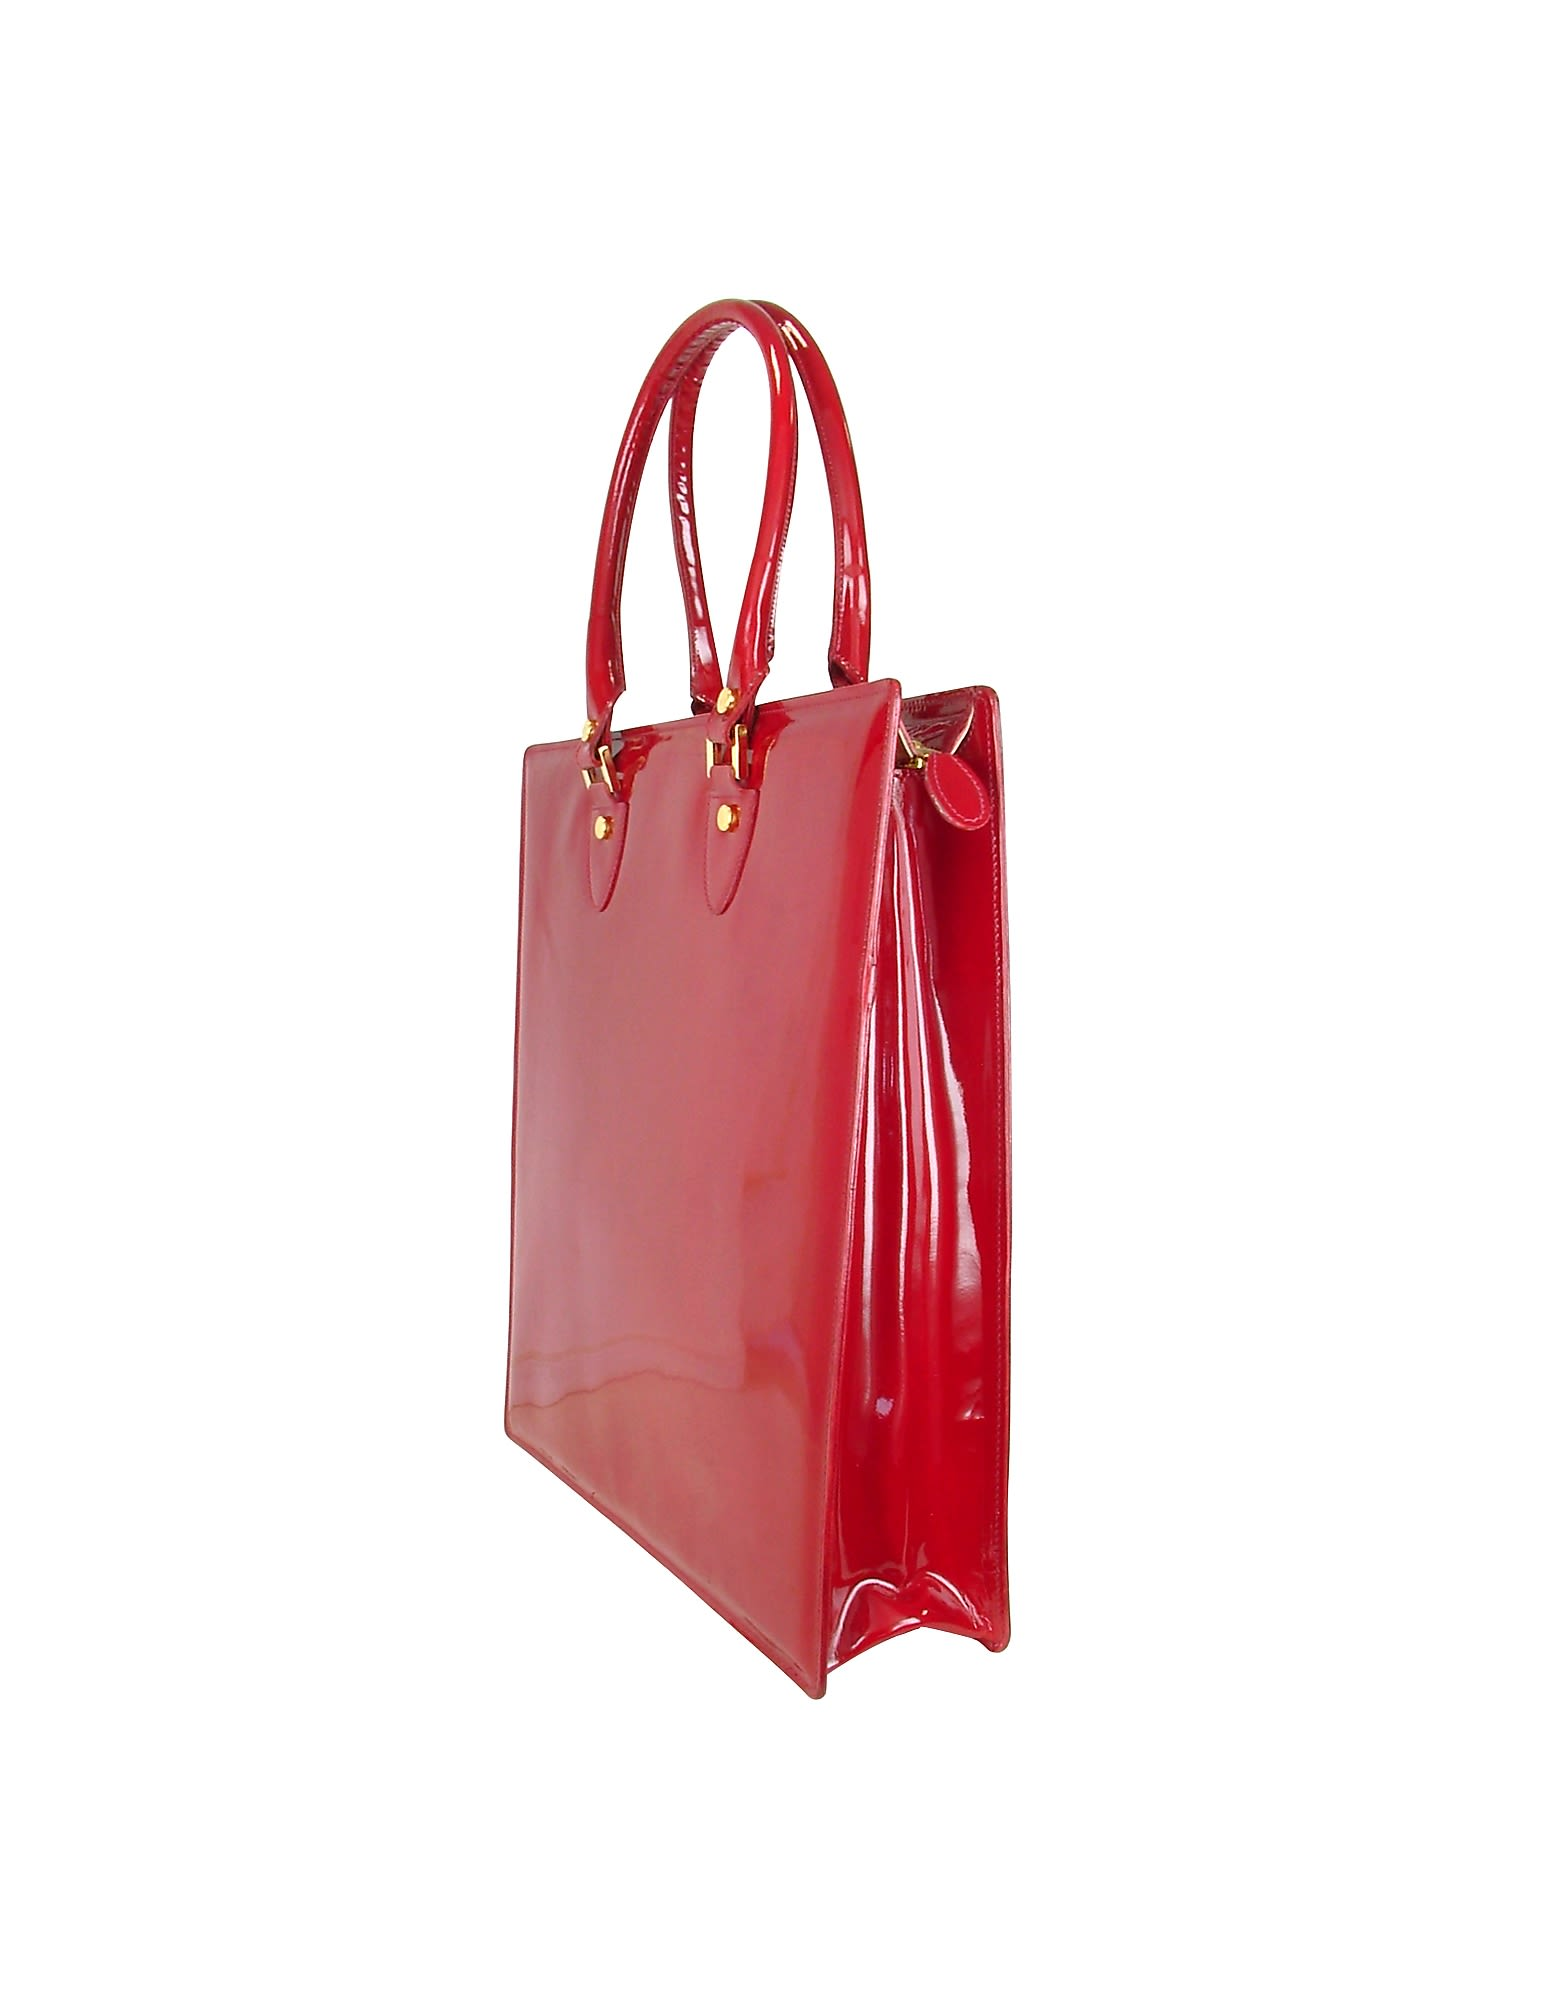 L.A.P.A. Handbags, Ruby Patent Leather Tote Bag